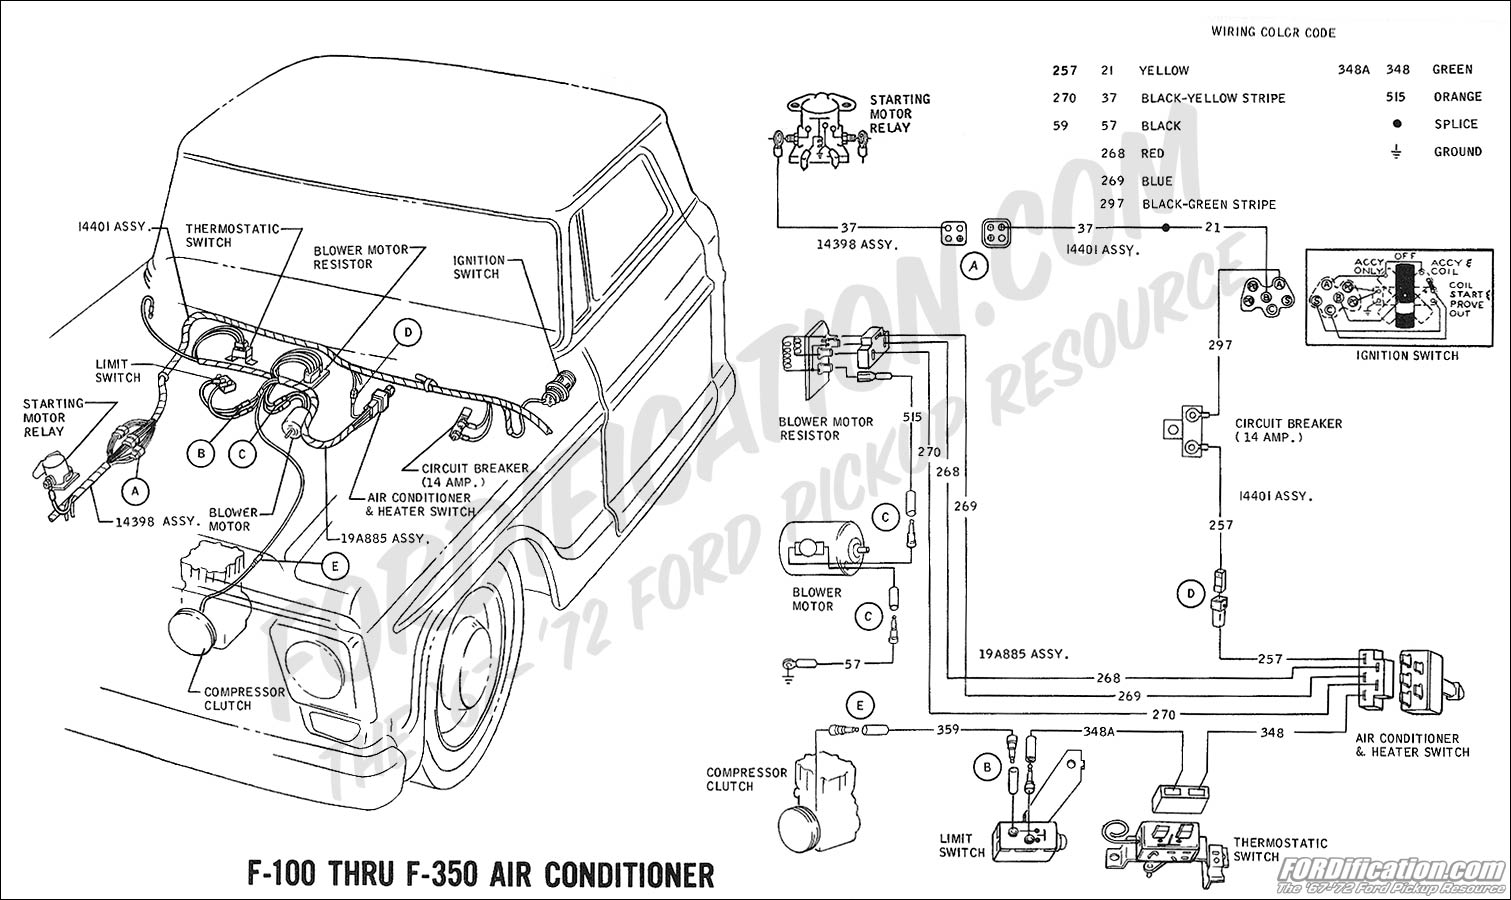 Case Backhoe Wiring Diagram Get Free Image About further Ford F150 How To Replace Idler And Tension Pulleys 359907 also 544794886152916115 as well 1428721 Engine Bay Wiring Pinouts furthermore Electrical Diagram 2005 Montego. on ford explorer aftermarket parts